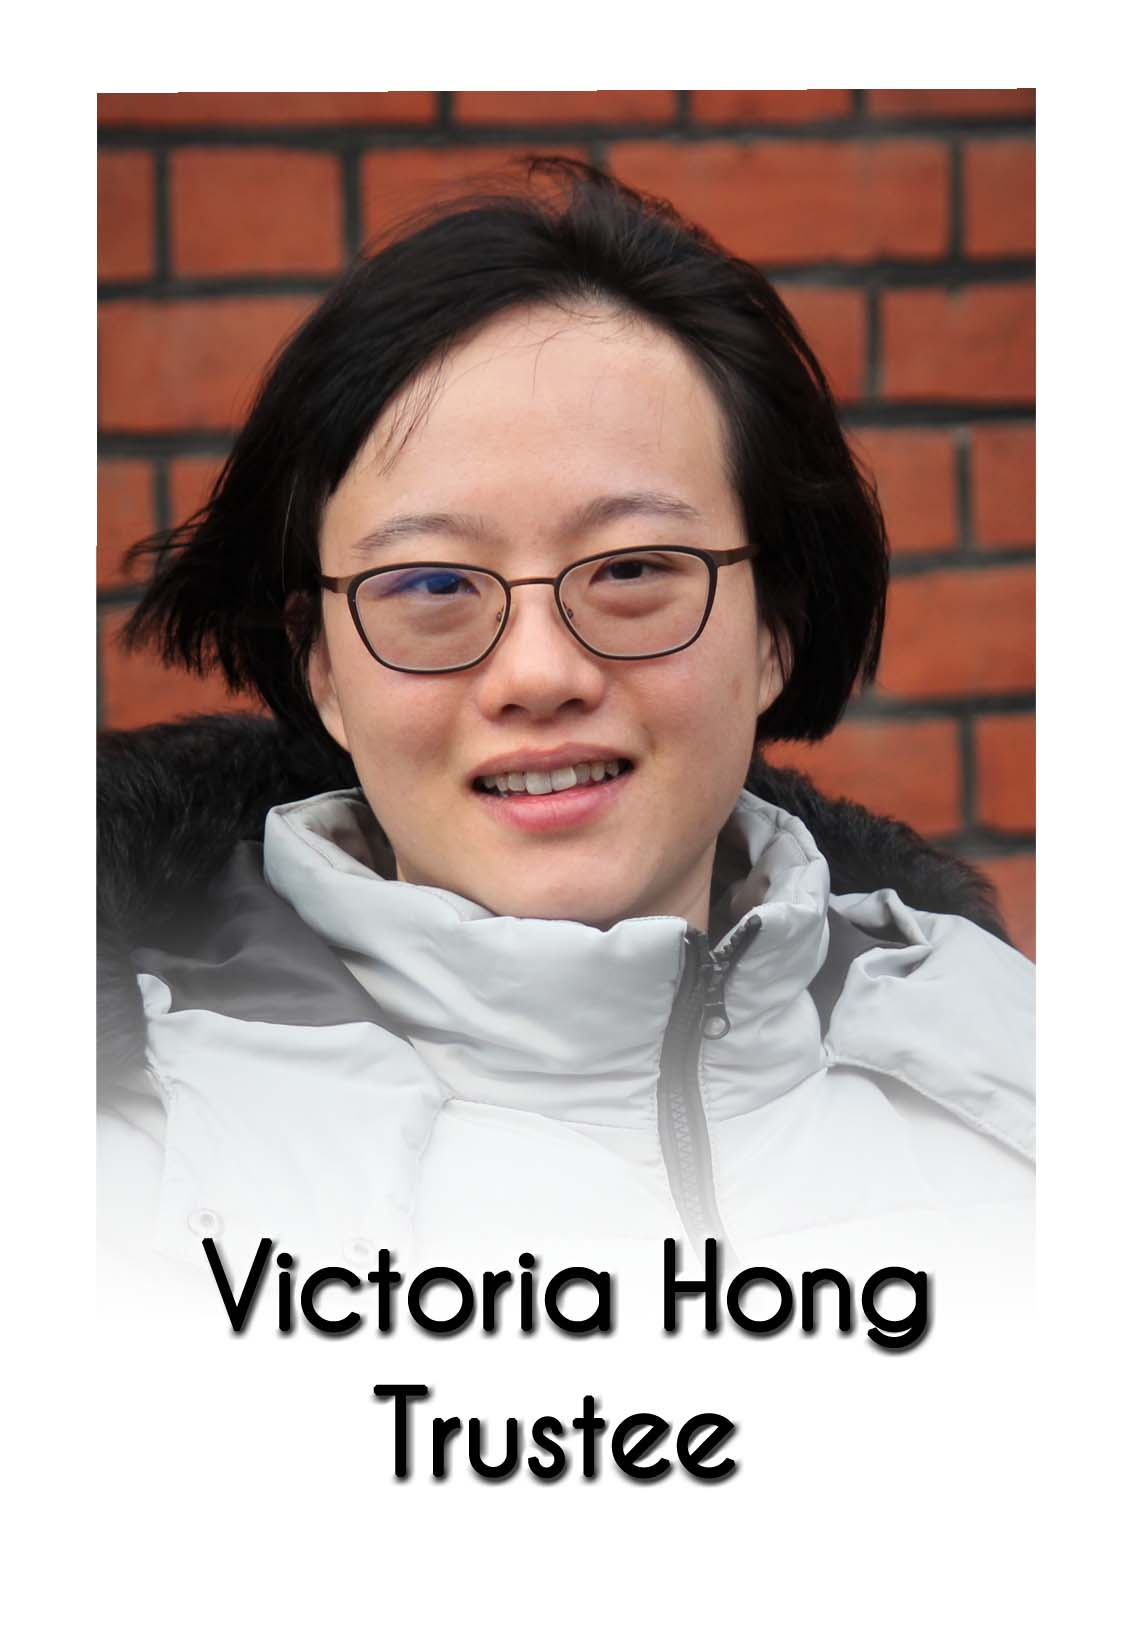 Victoria Hong labelled